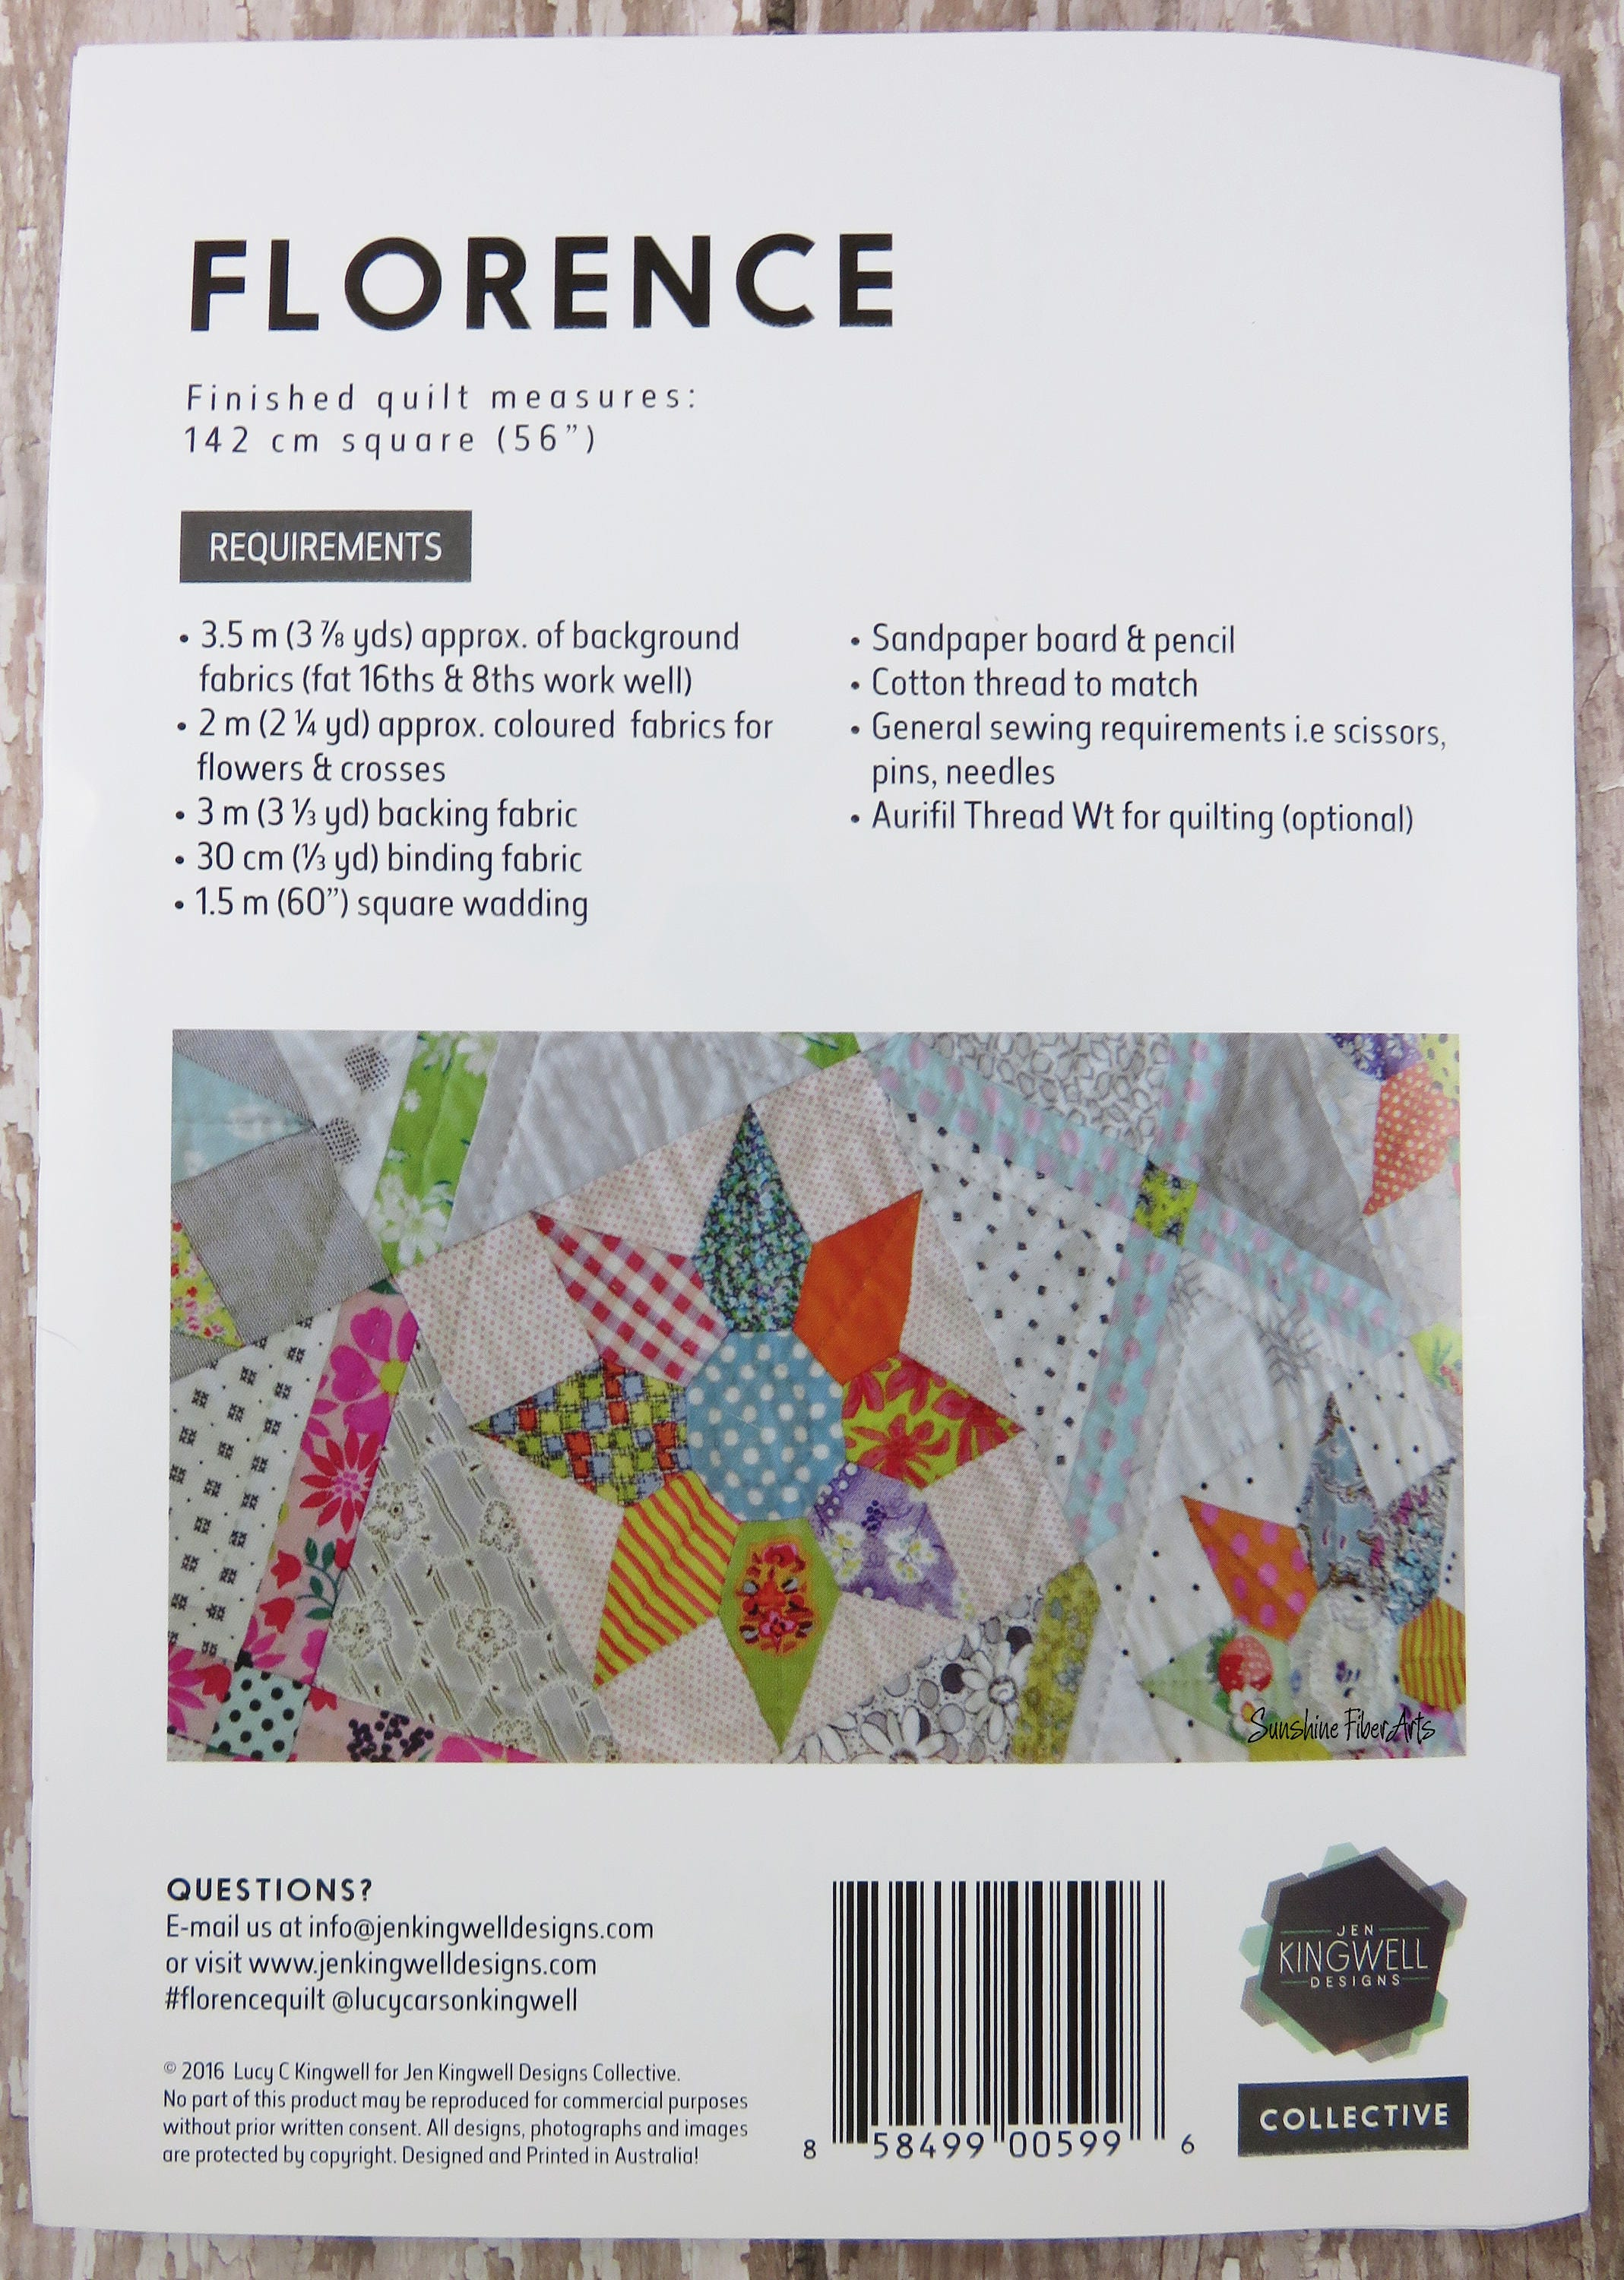 Acrylic Templates - Florence Quilt Pattern Included - Jen Kingwell ...